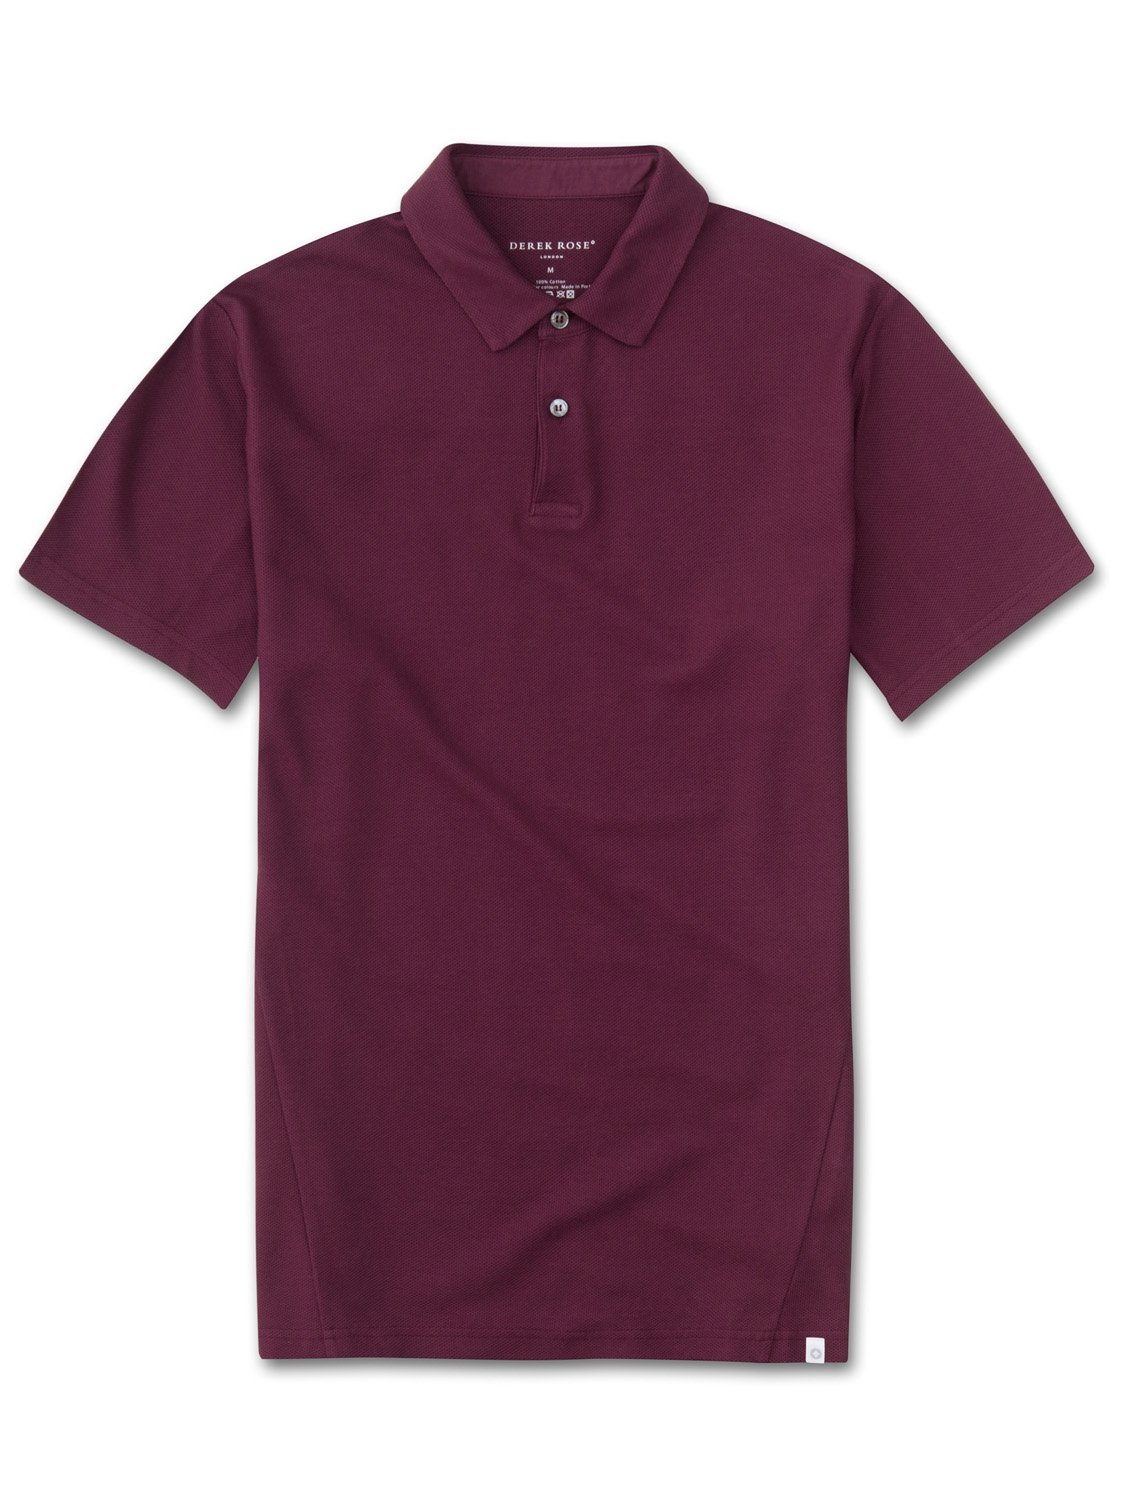 Men's Short Sleeve Polo Shirt Roland 2 Pique Cotton Burgundy